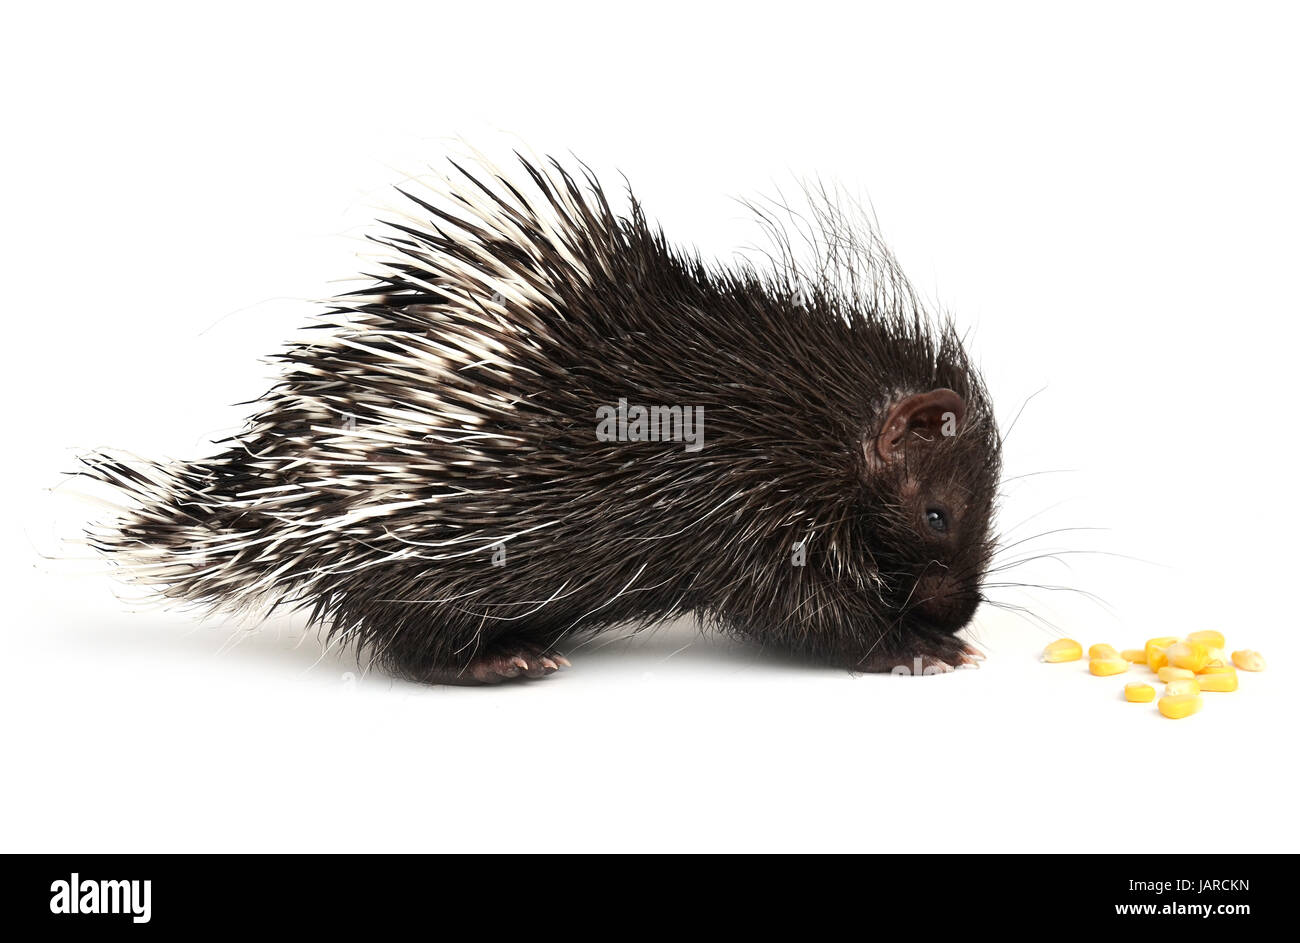 baby porcupine isolated on white background - Stock Image